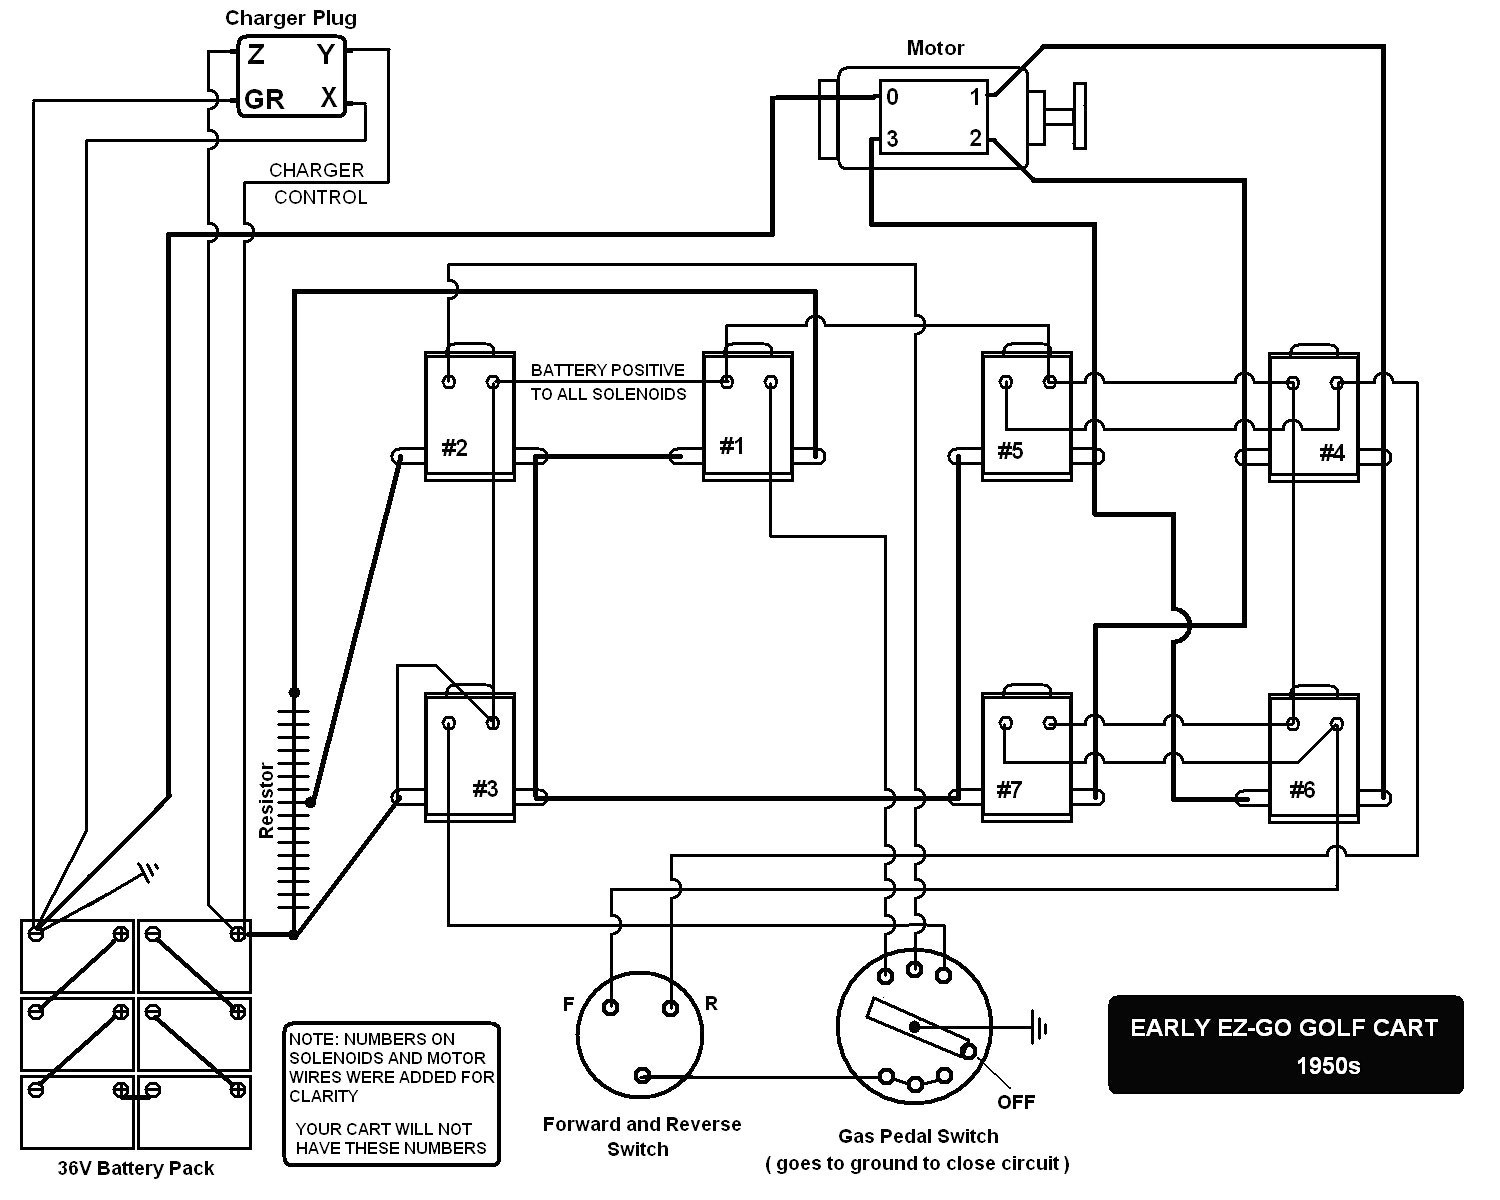 Bad Boy Wiring Diagram - Wiring Diagram Land Pride Zt Wiring Diagram on